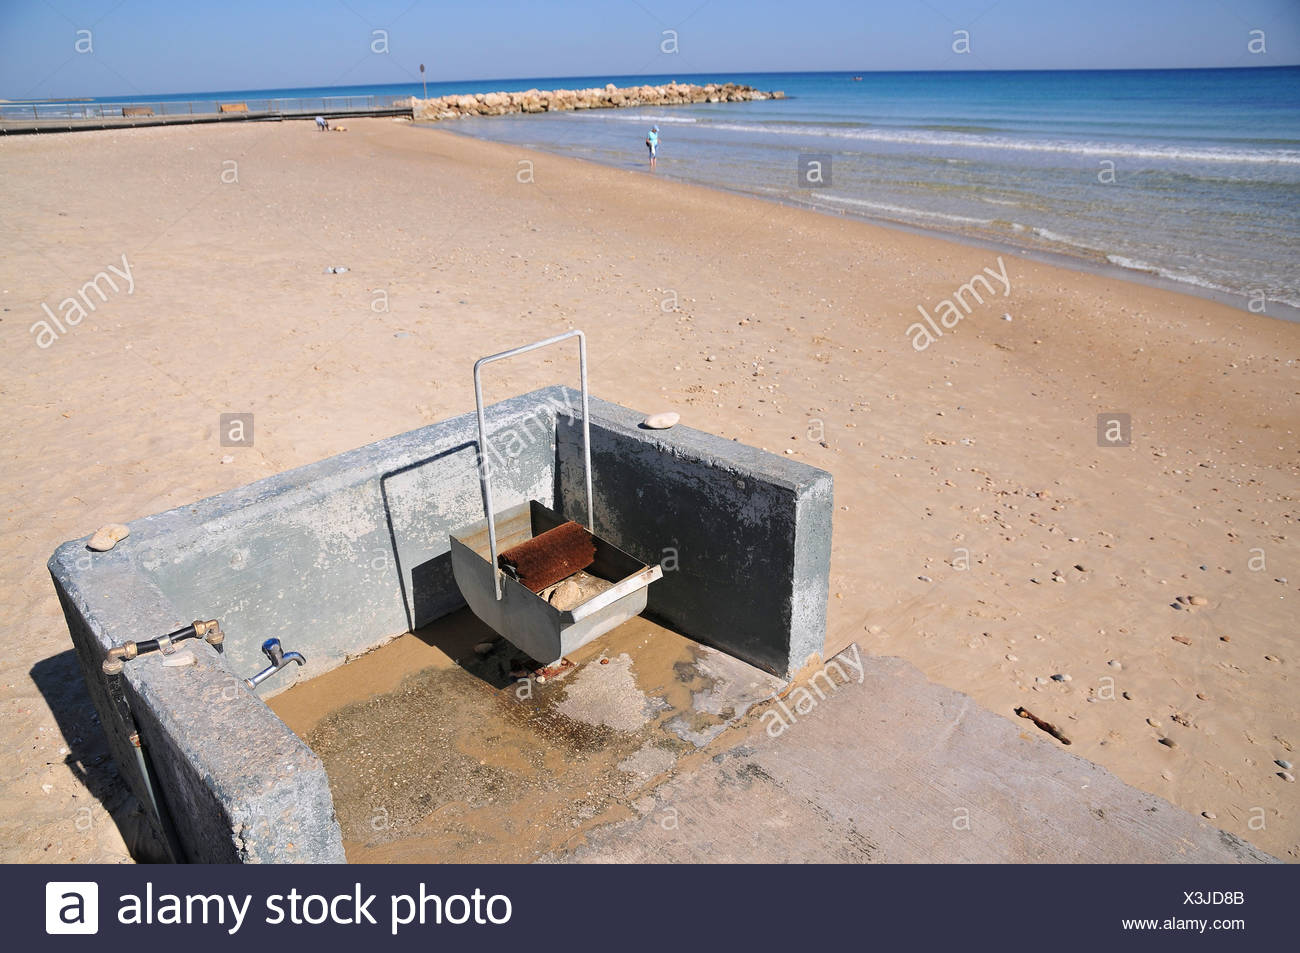 A device for cleaning tar of the feet of bathers - Stock Image